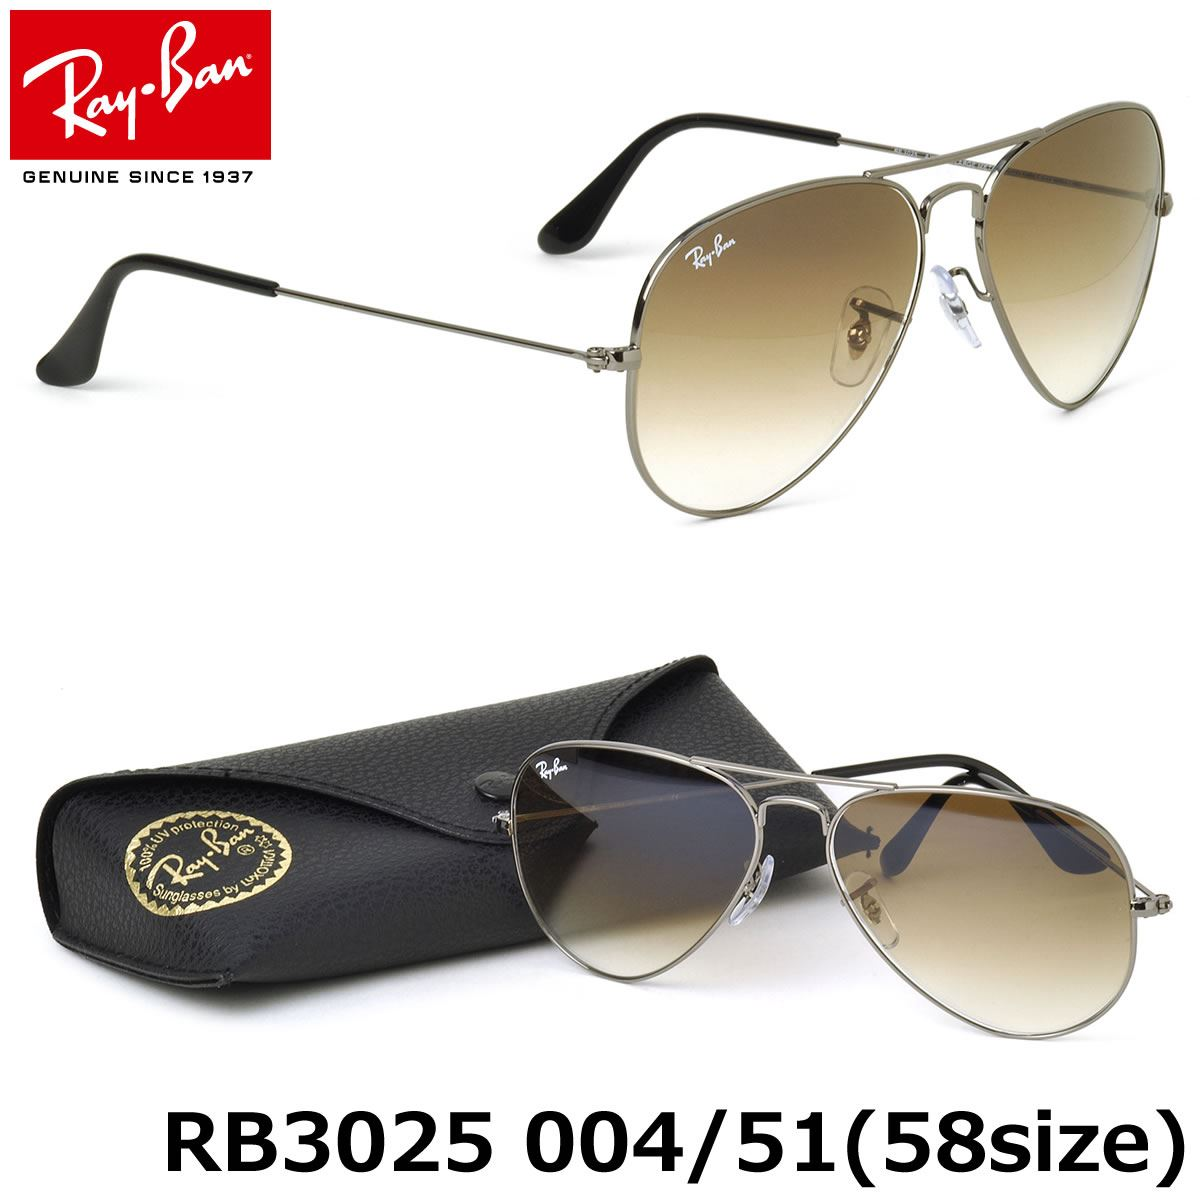 Lentes De Sol Ray Ban Aviador RB3025 004 51 Marron Degrade Brown Talla 58mm    Juntoz.com 0ba94d9ba4